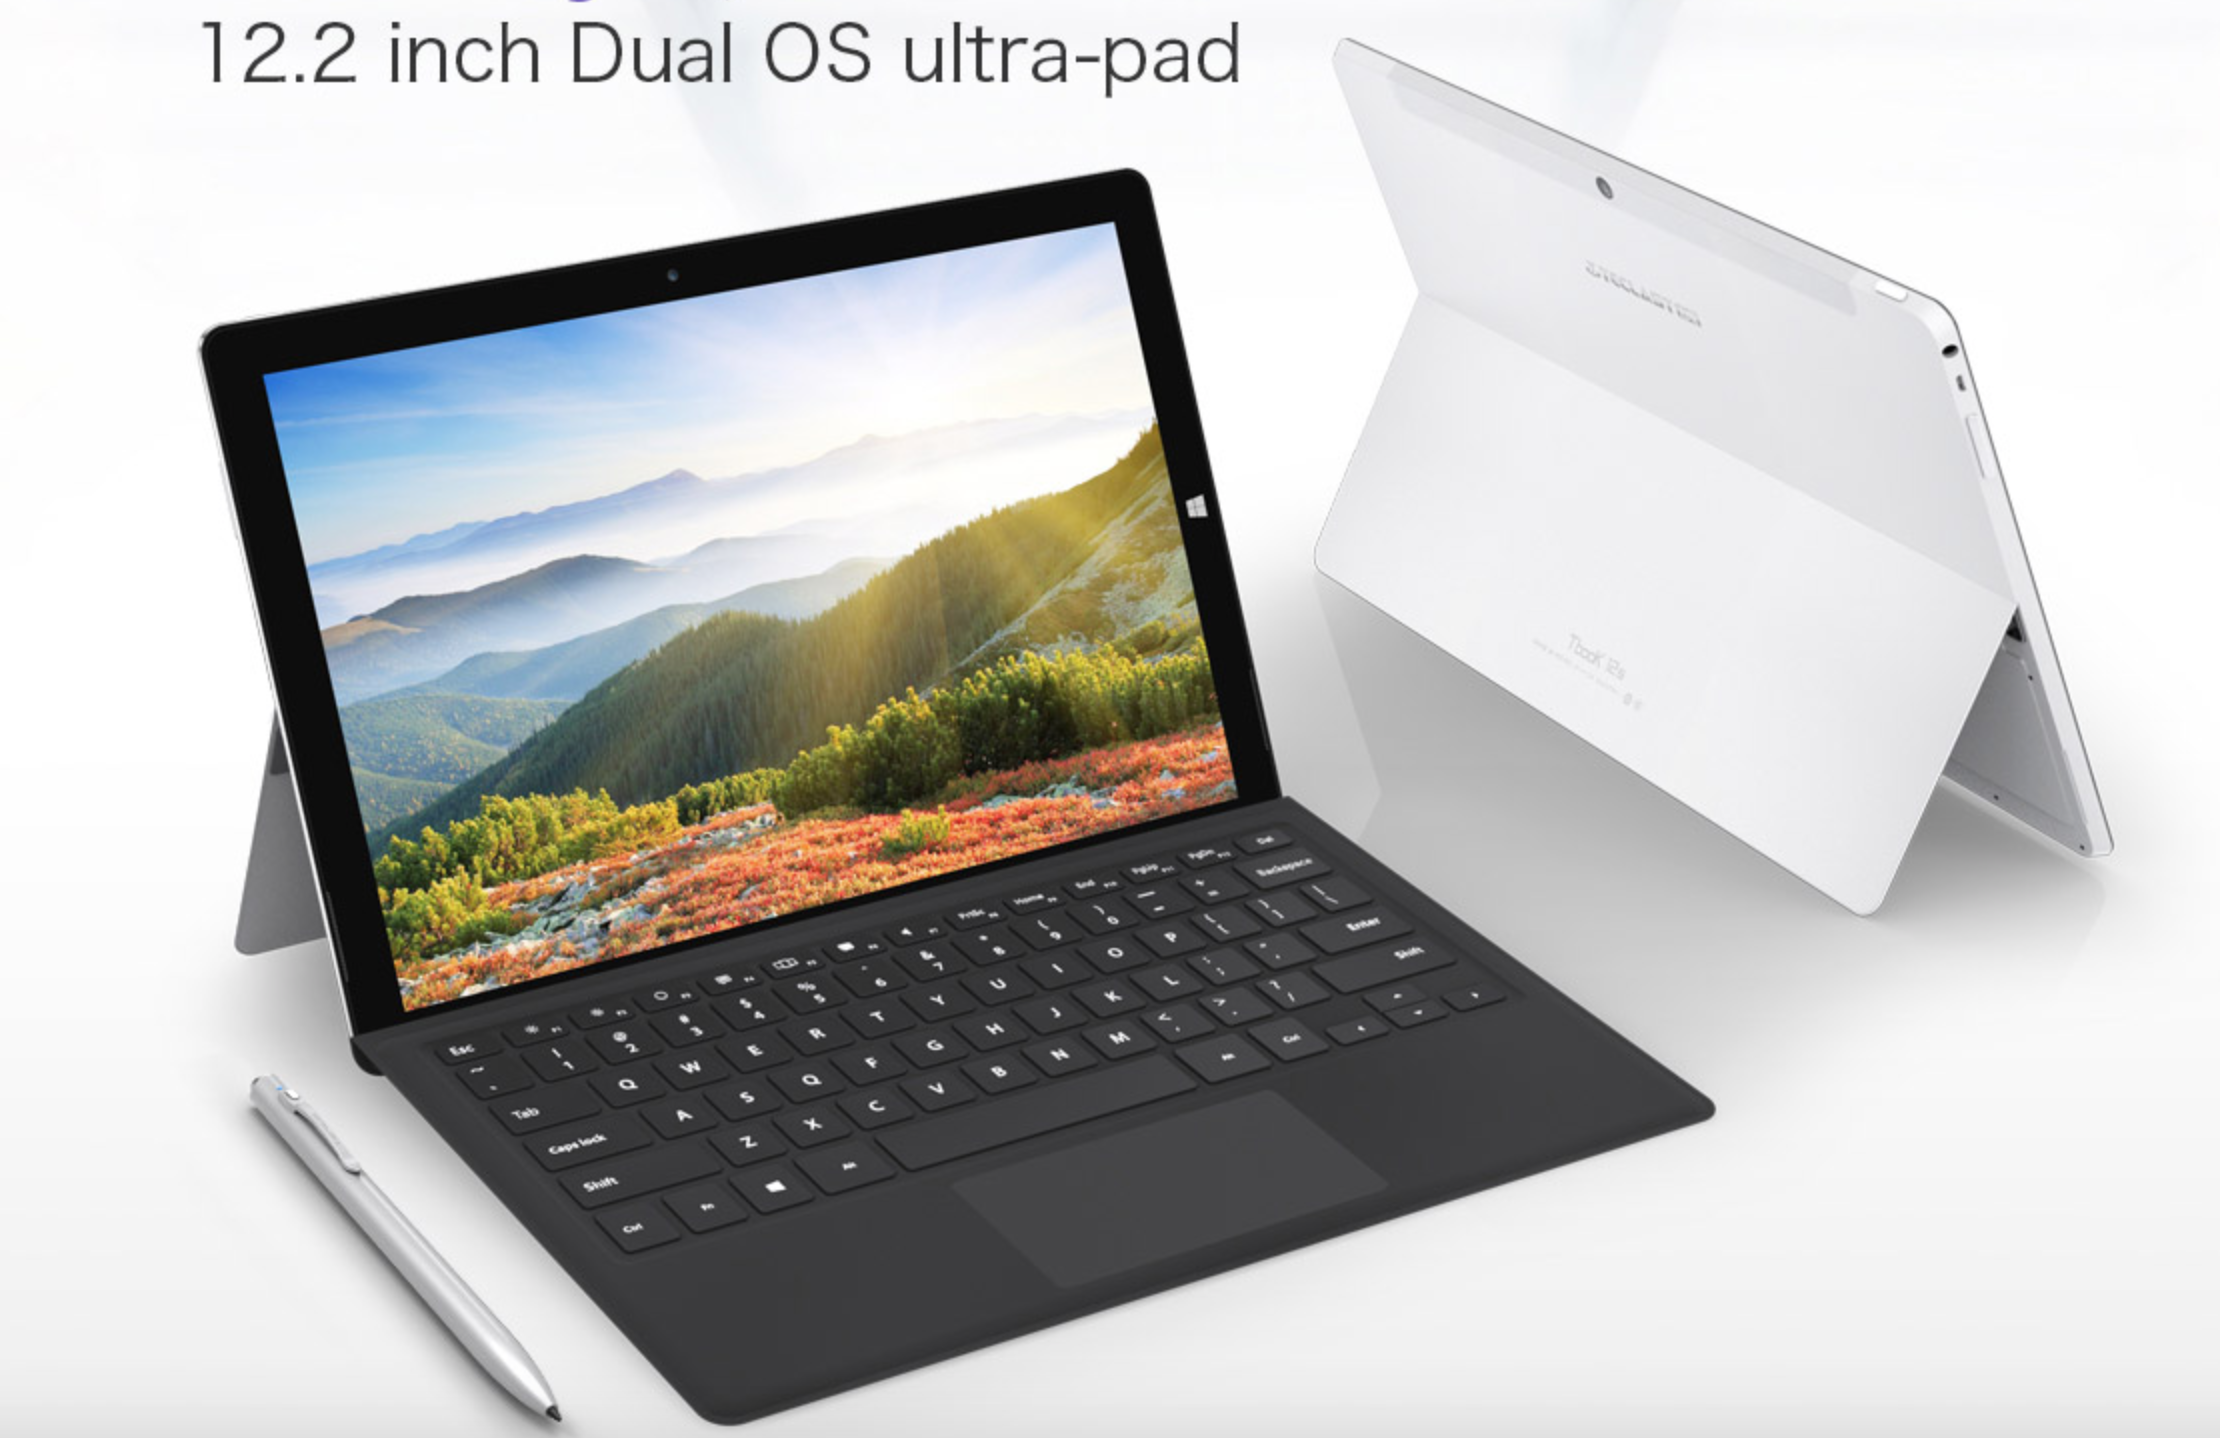 Teclast Tbook12s 2 in 1 Ultrabook Windows 10+Android 5.1 Intel Cherry Trail X5 Z8350 64bit Quad Core 4GB+64GB 12.2